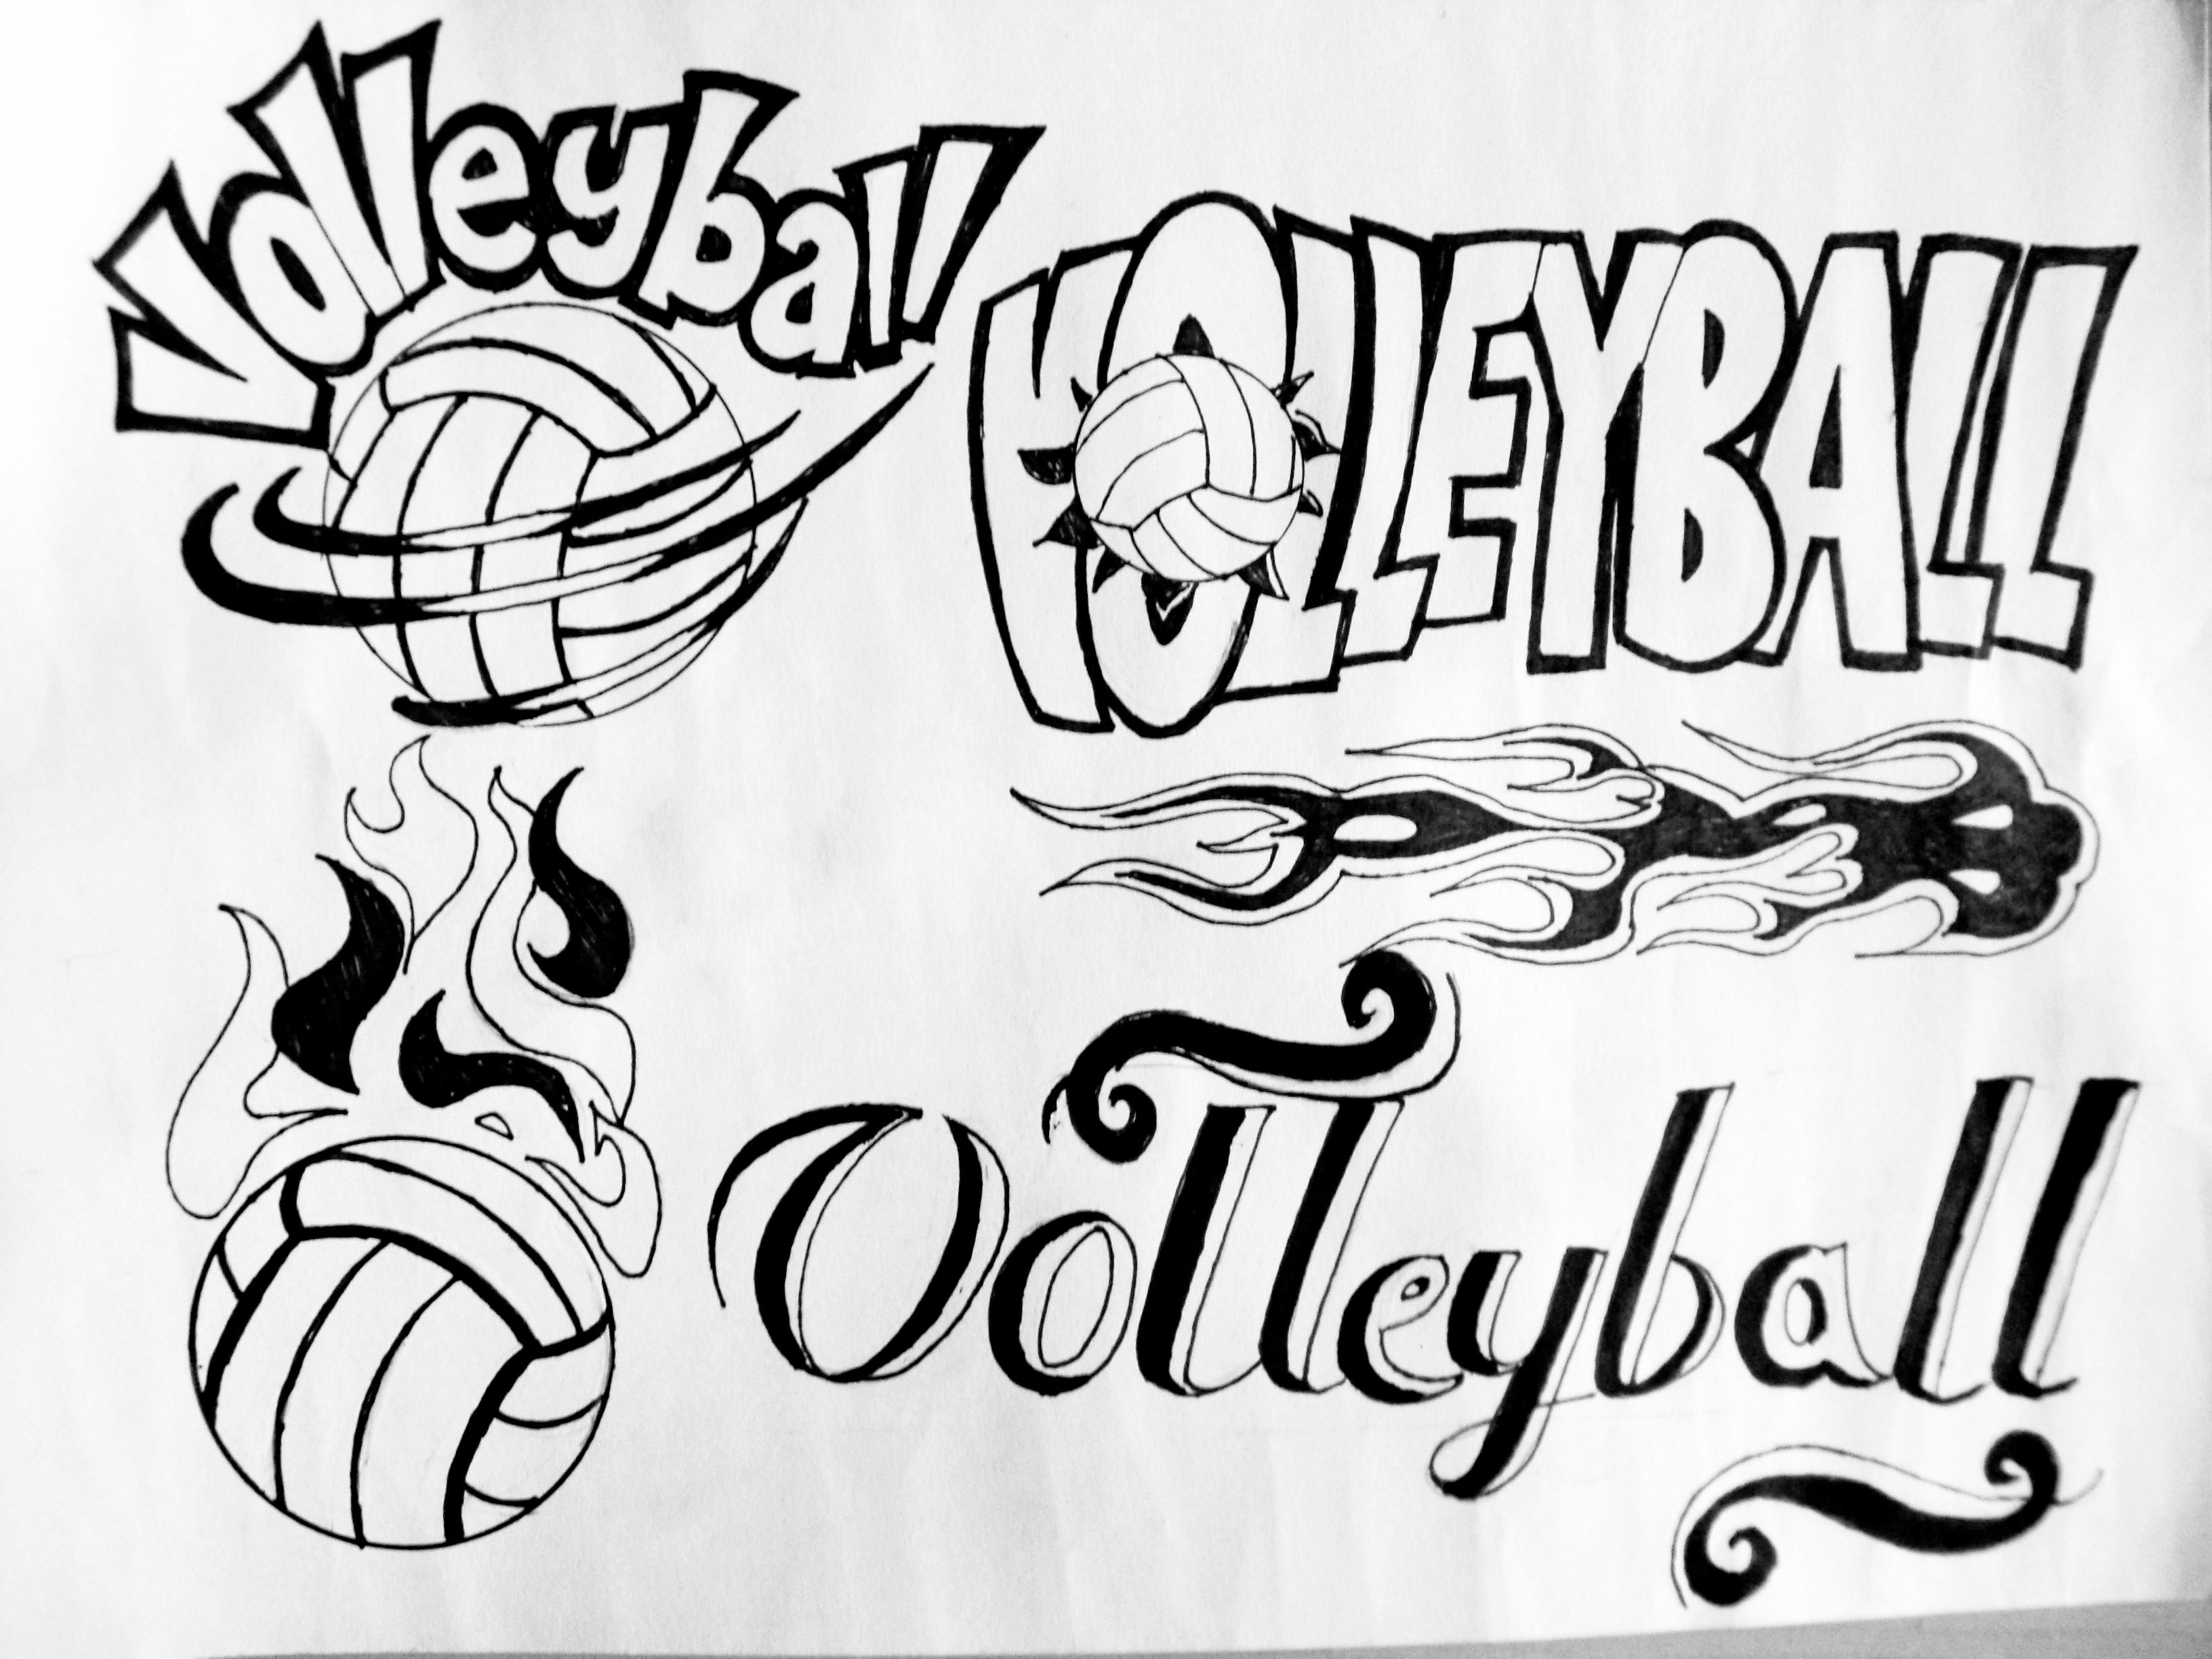 3264x2448 Artwork Volleyball Posterlogo Design Aep E Portfolio